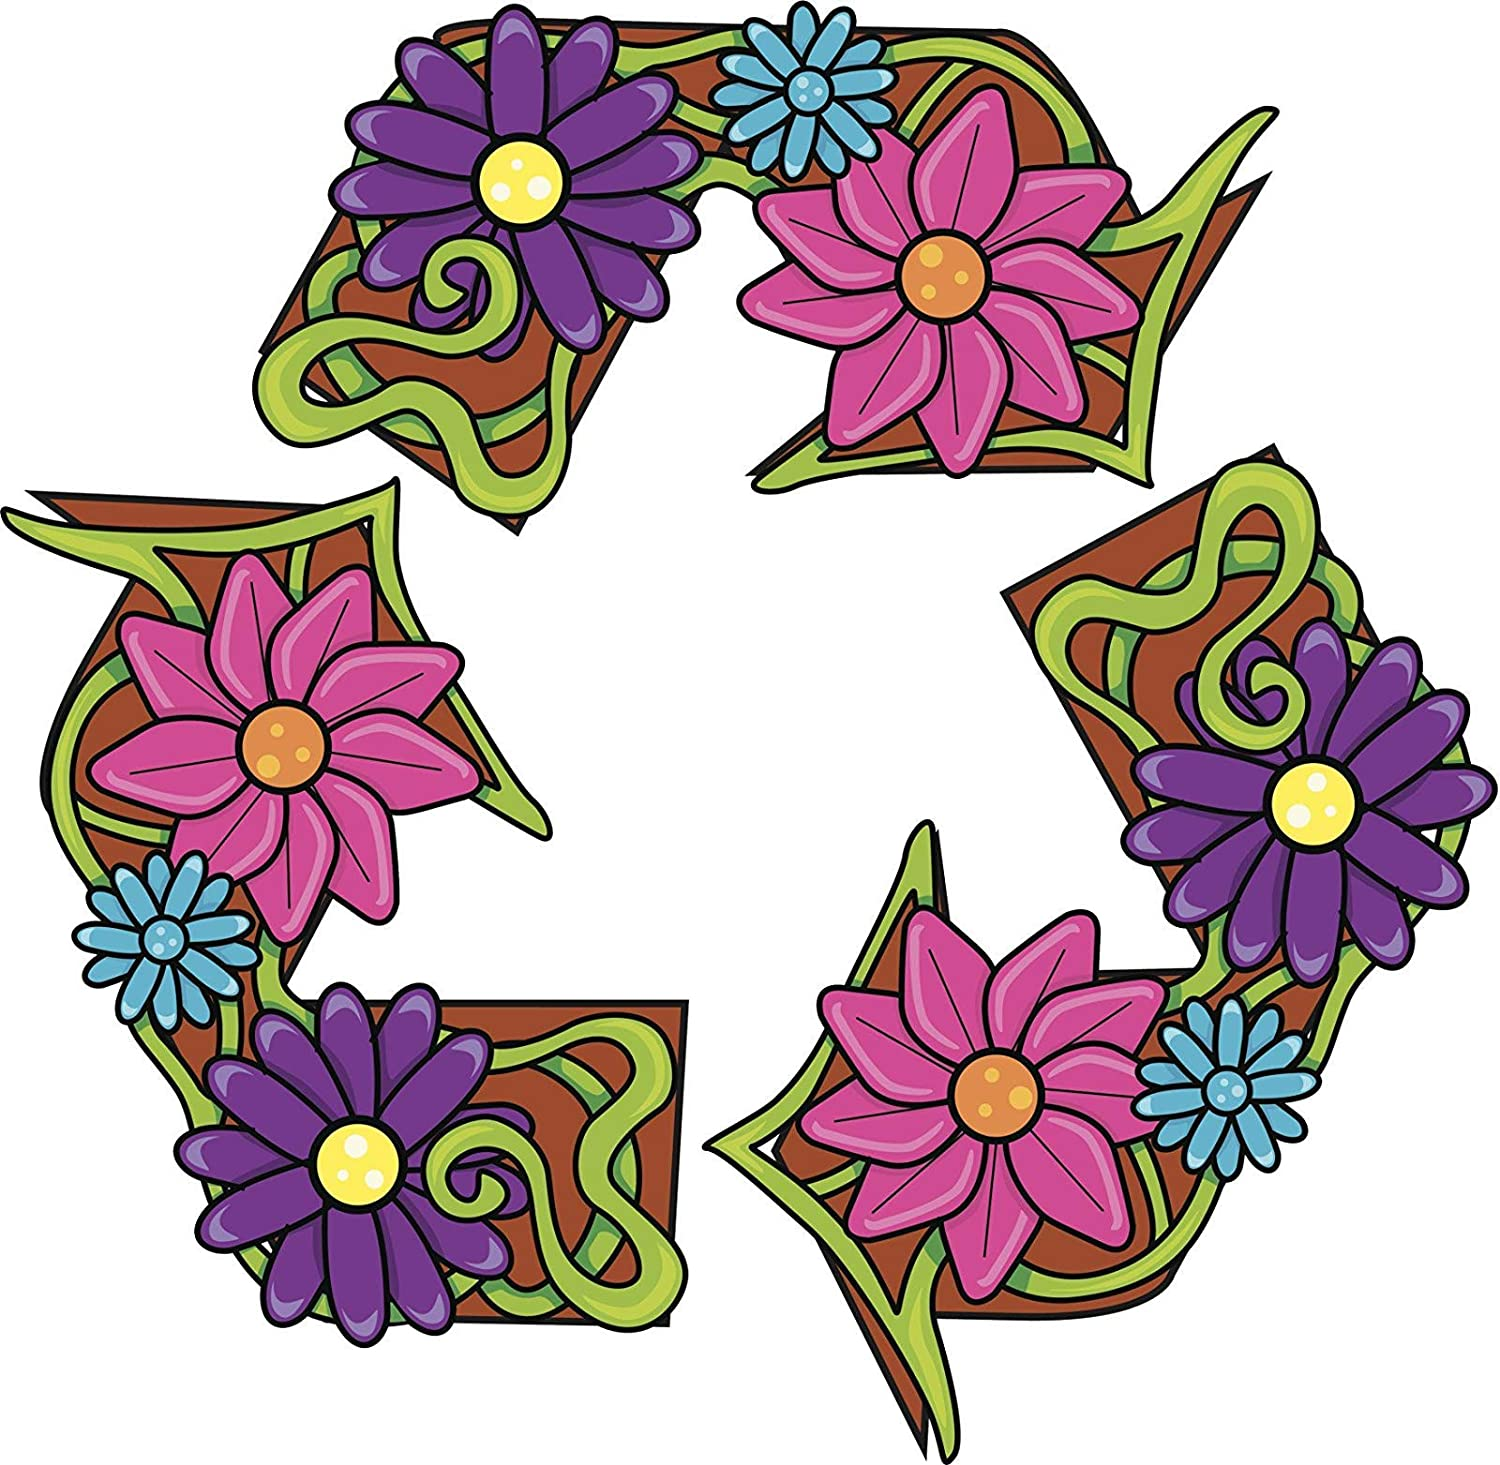 EW Designs Magnet Recycle Sign Made with Flowers RED Green Pink Turquoise Purple Magnetic Vinyl Magnet Bumper Sticker Two in One Pack (4 Inches Wide)